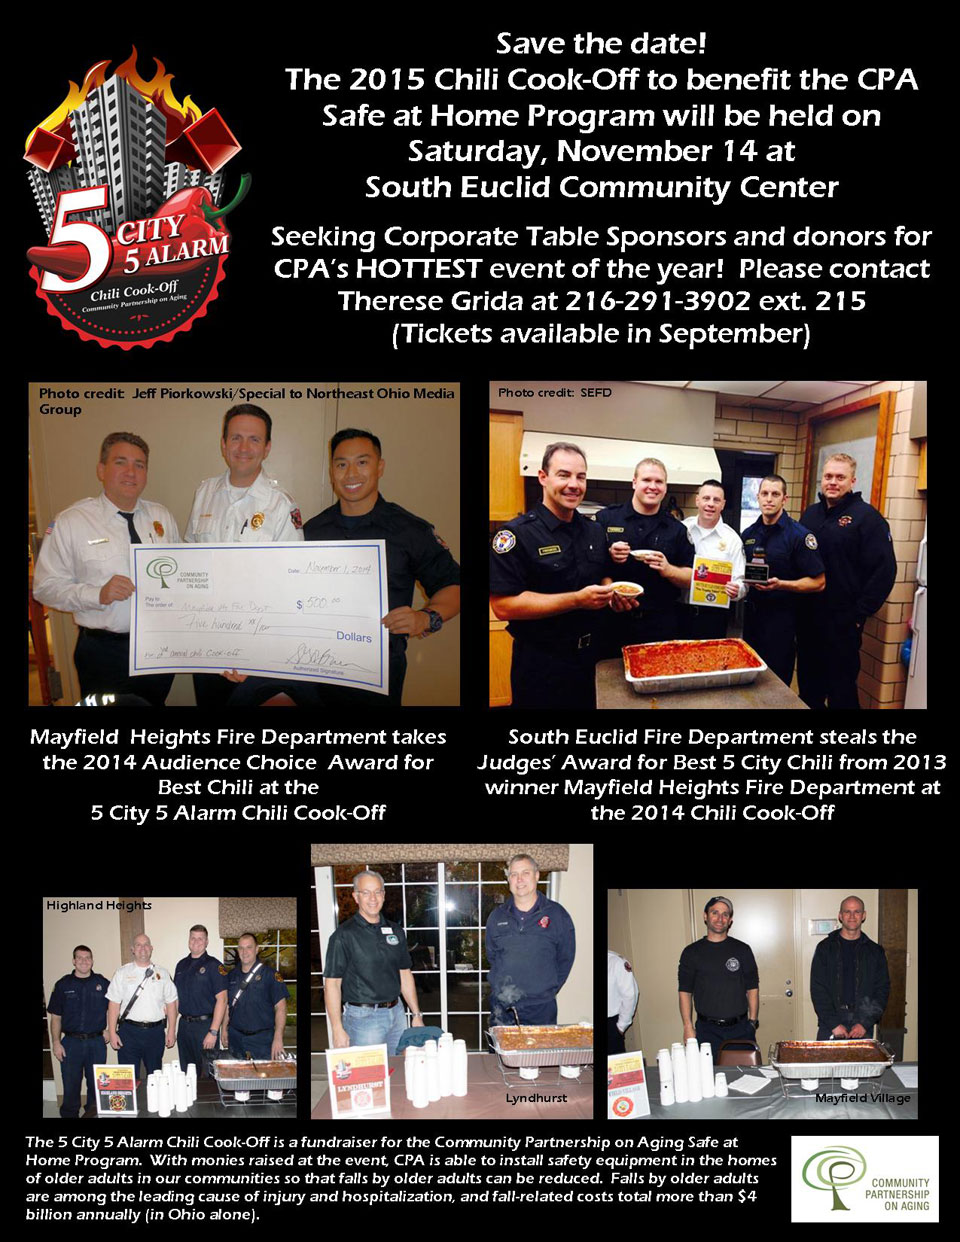 Community Partnership on Aging 5-City 5-Alarm Chili Cook-Off